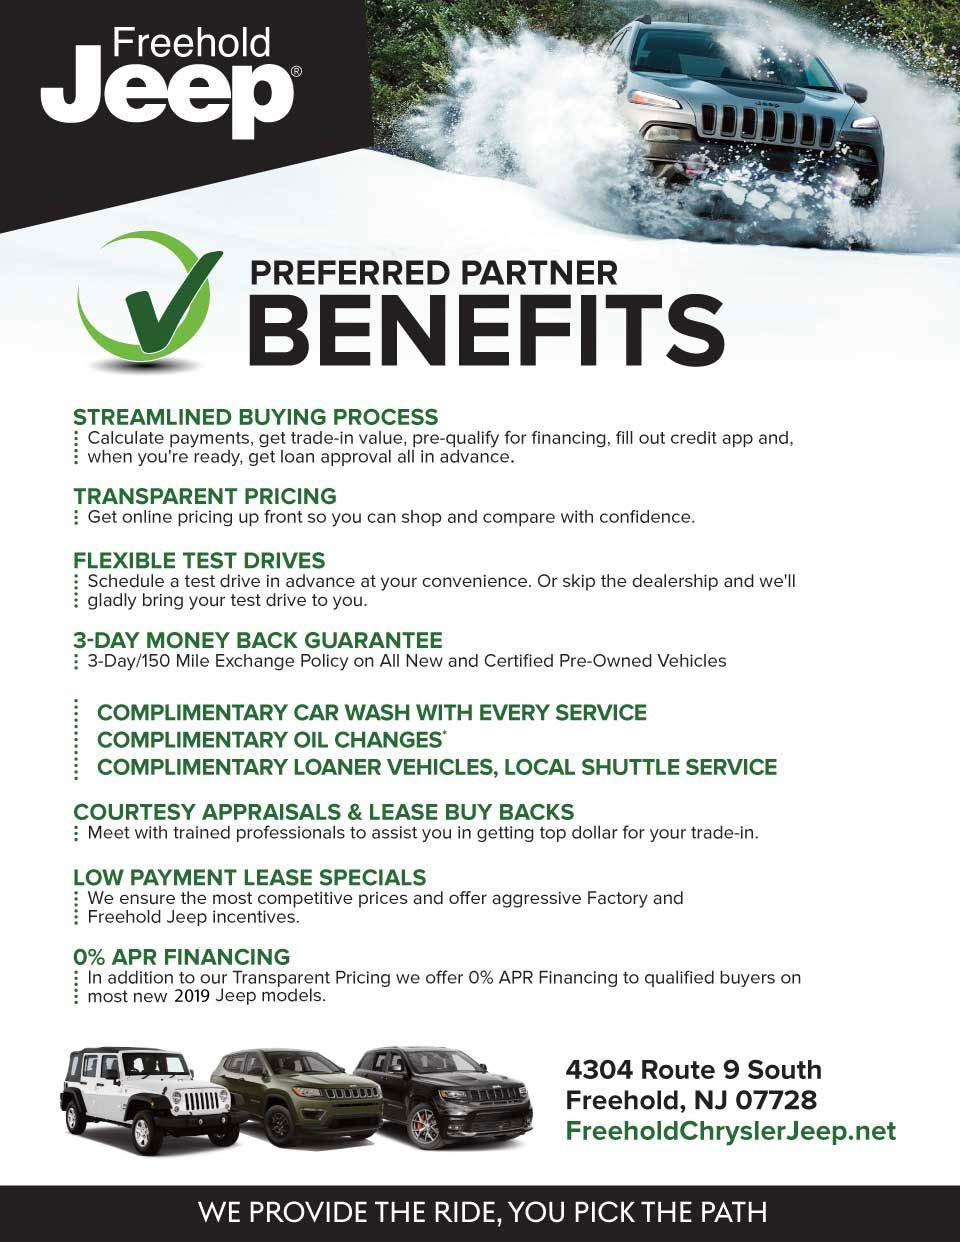 preFerreD parTner BeneFiTs - sTreamlineD Buying processCalculate payments, get trade-in value, pre-qualify for financing, fill out credit app and, when you're ready, get loan approval all in advance. - TransparenT pricingGet online pricing up front so you can shop and compare with confidence. - FlexiBle TesT DrivesSchedule a test drive in advance at your convenience. Or skip the dealership and we'll gladly bring your test drive to you. - 3-Day money Back guaranTee3-Day/150 Mile Exchange Policy on All New and Certified Pre-Owned Vehicles - complimenTary car Wash WiTh every servicecomplimenTary oil changes*complimenTary loaner vehicles, local shuTTle service - courTesy appraisals & lease Buy BacksMeet with trained professionals to assist you in getting top dollar for your trade-in. - loW paymenT lease specialsWe ensure the most competitive prices and offer aggressive Factory and Freehold Jeep incentives. - 0% apr Financing In addition to our Transparent Pricing we offer 0% APR Financing to qualified buyers on most new 2019 Jeep models.